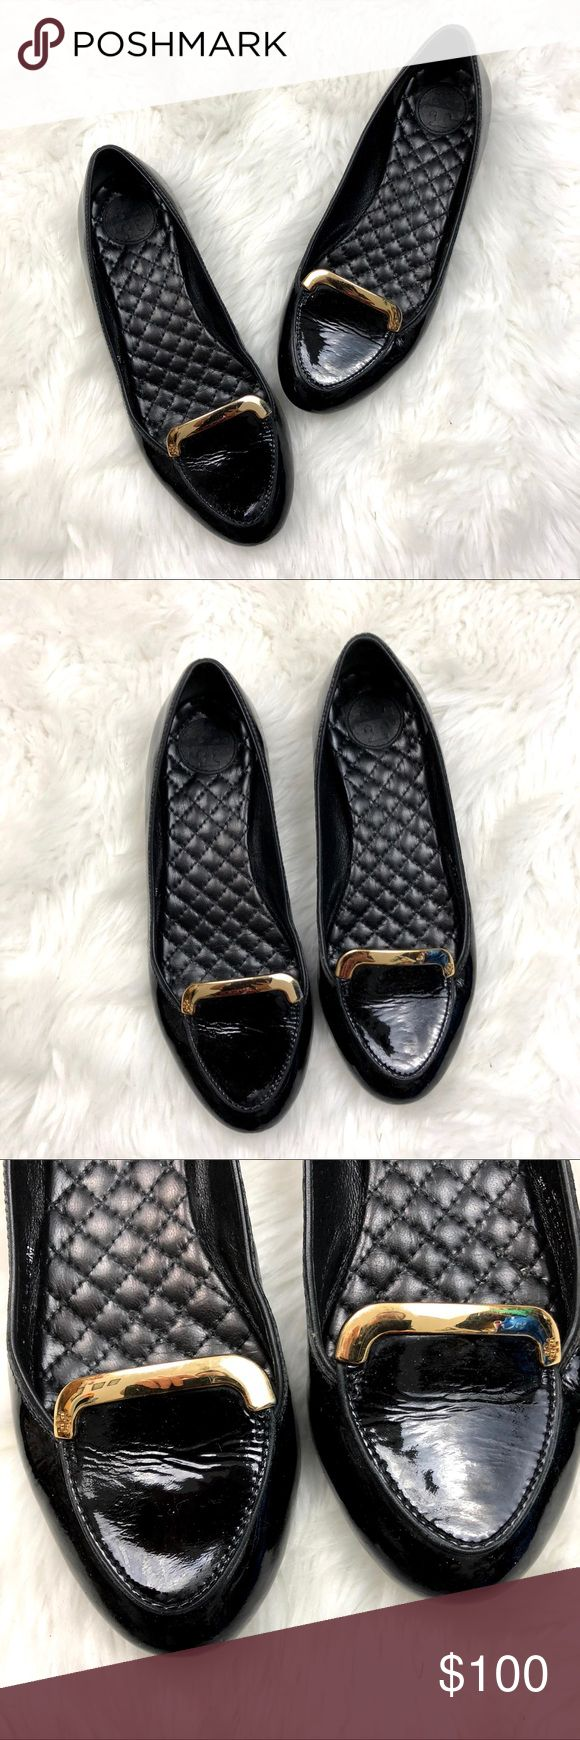 🍀Tory Burch Black Leather Slip-on Loafer Flats Tory Burch 5.5 Womens Black Leather Slip-on Loafer Flats  This has been worn a few times.  Most wear at the sole. Please refer to photos for more details. Tory Burch Shoes Flats & Loafers